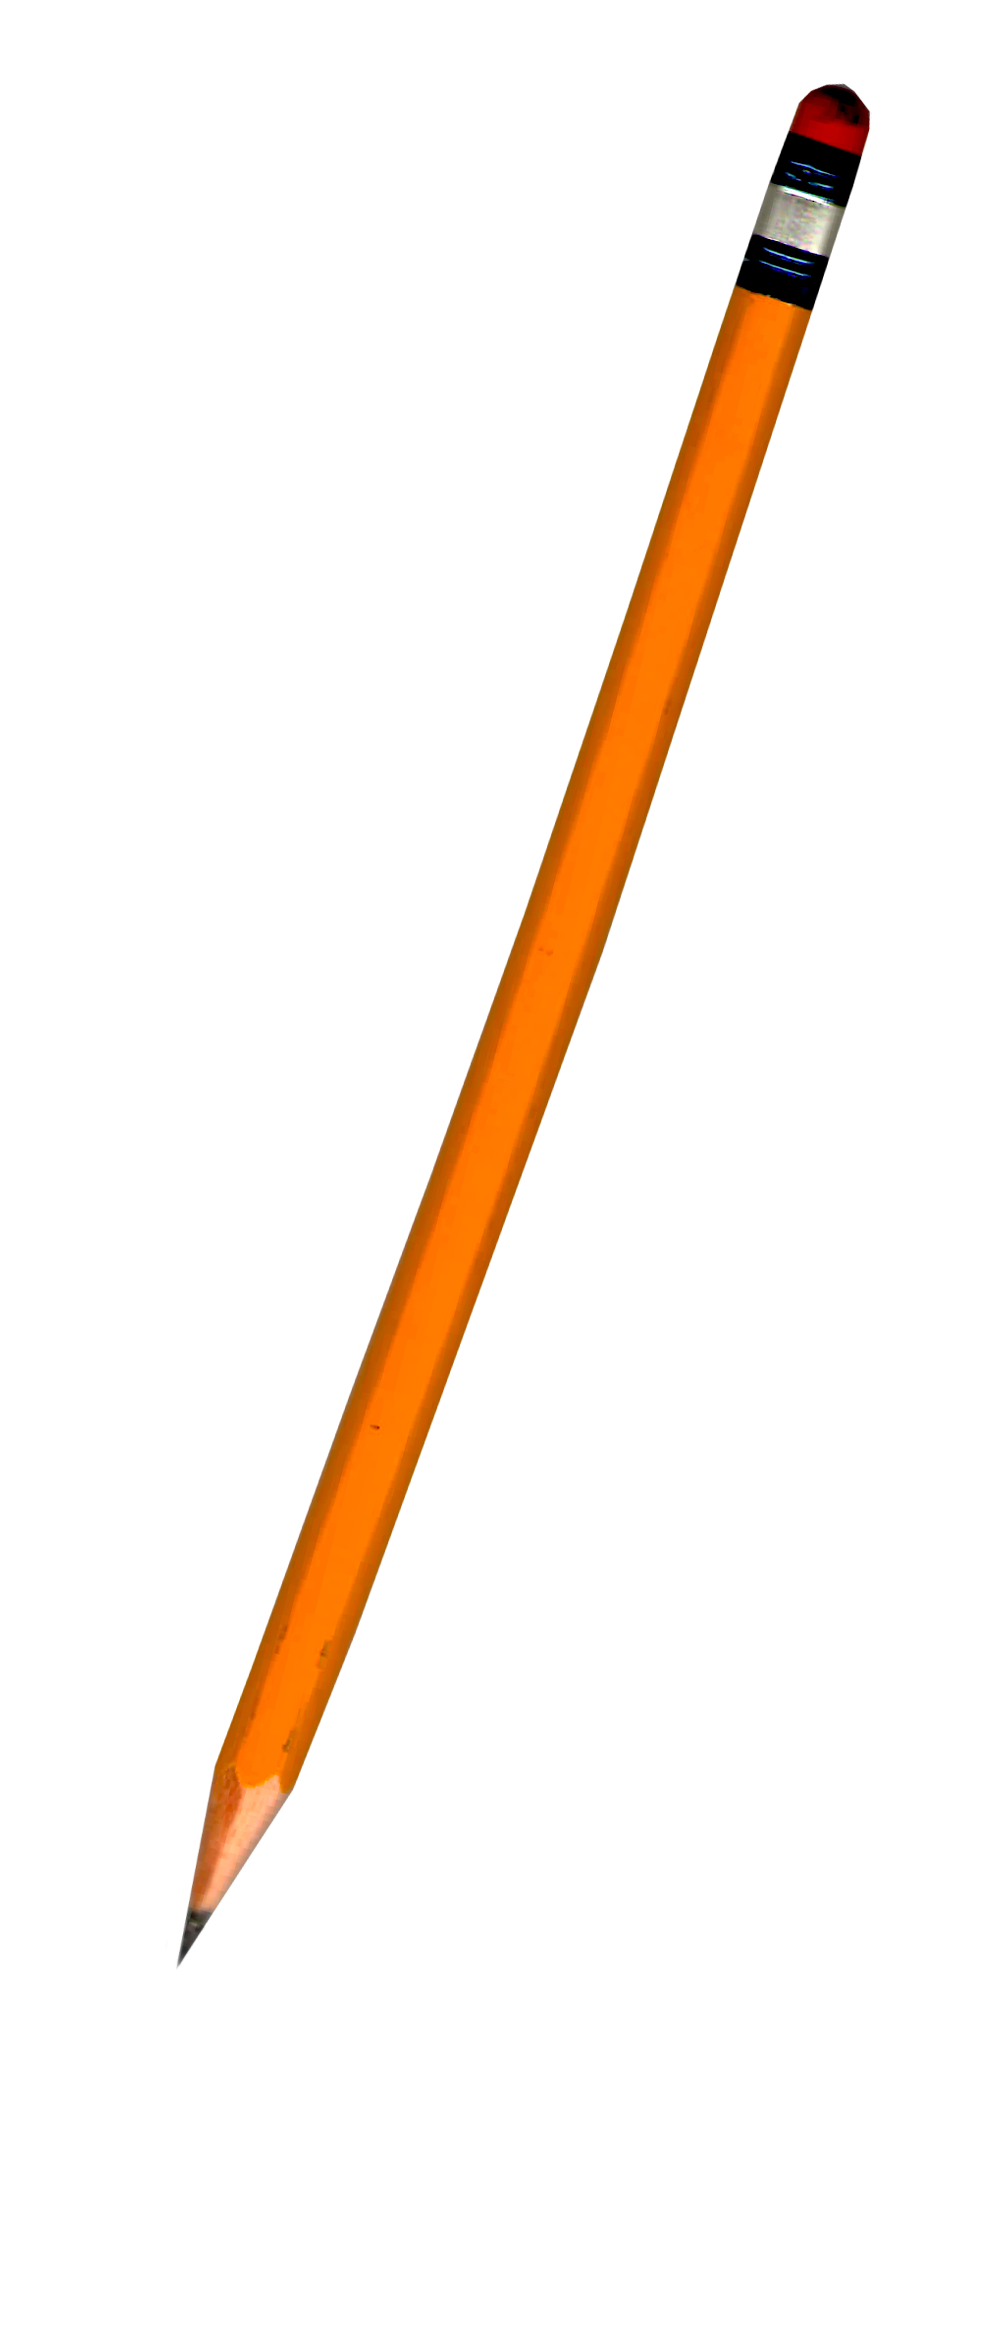 Pencil png image. Transparent pictures free icons